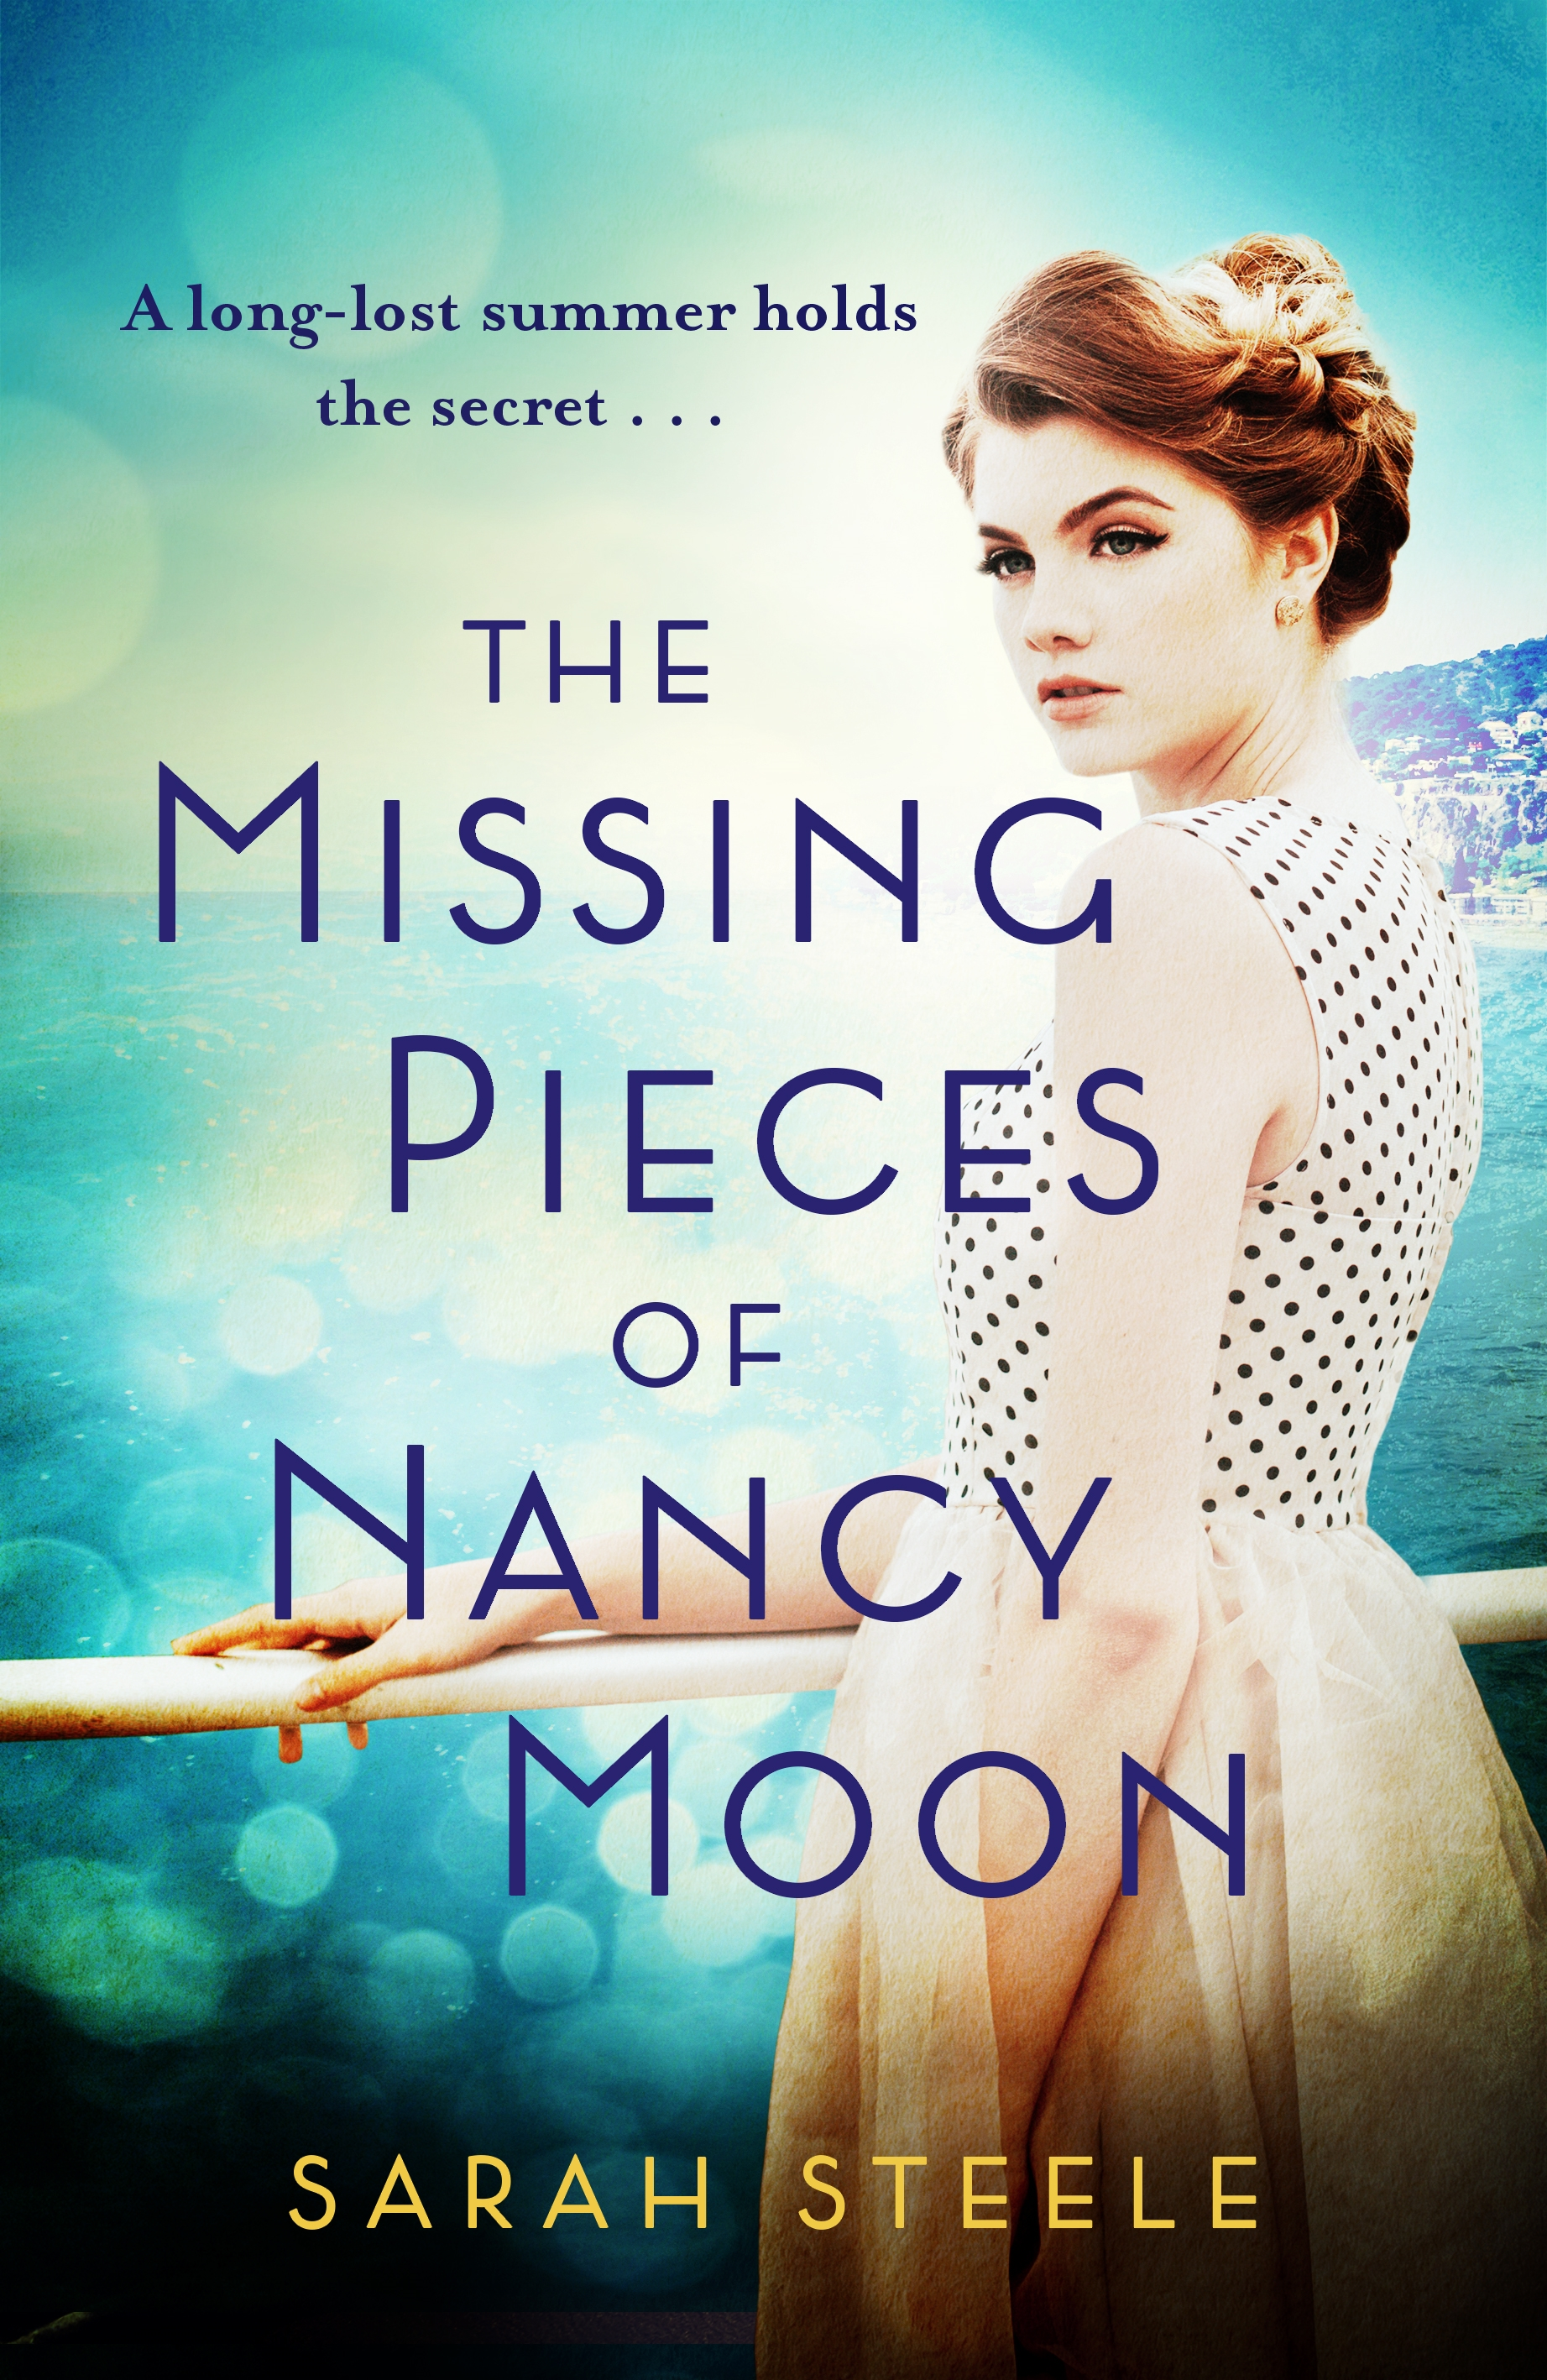 The missing pieces of nancy moon. cover